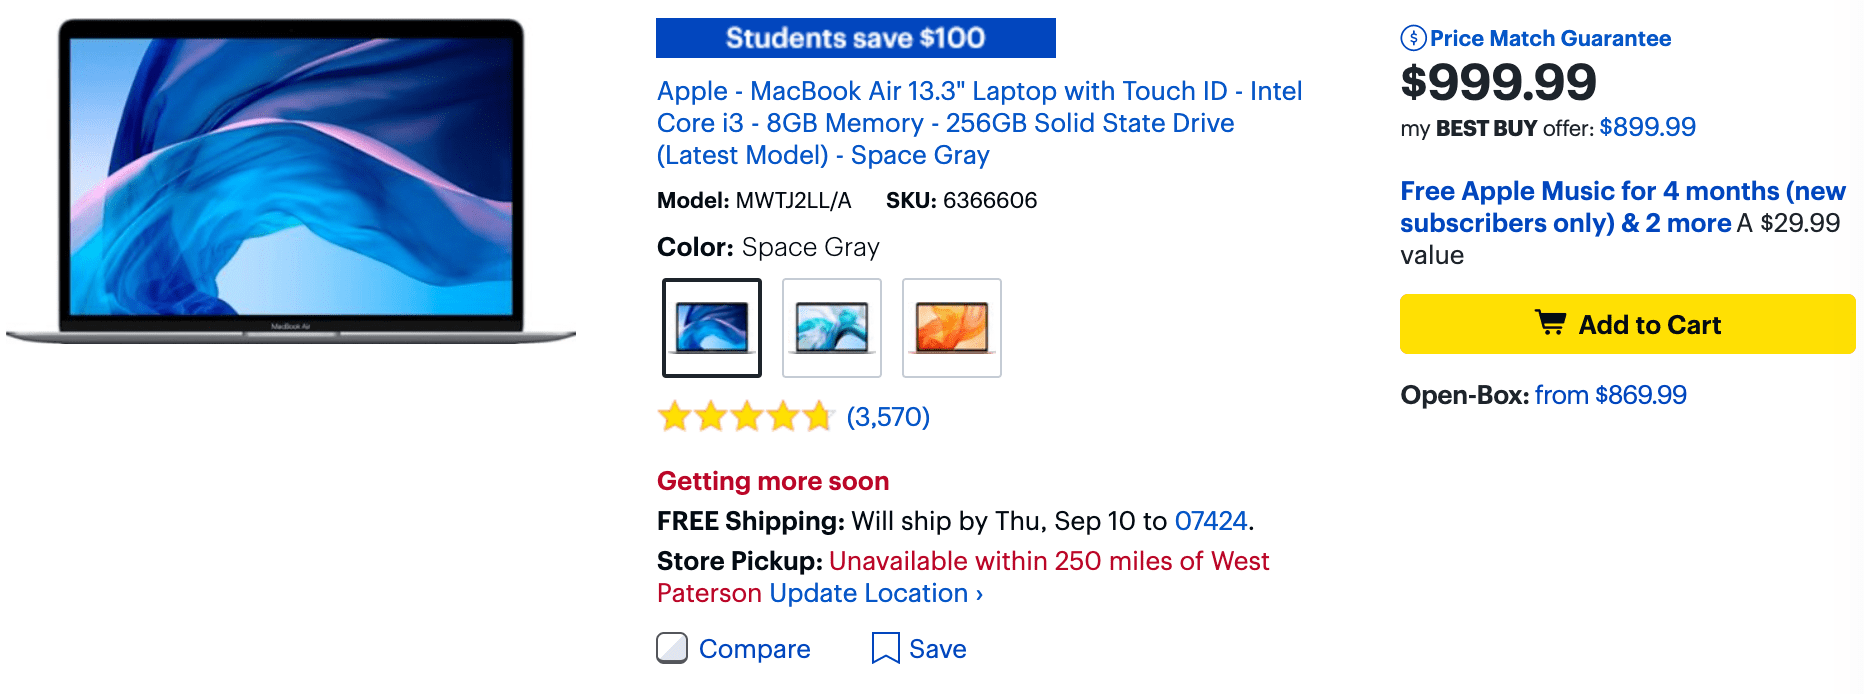 macbook bestbuy price